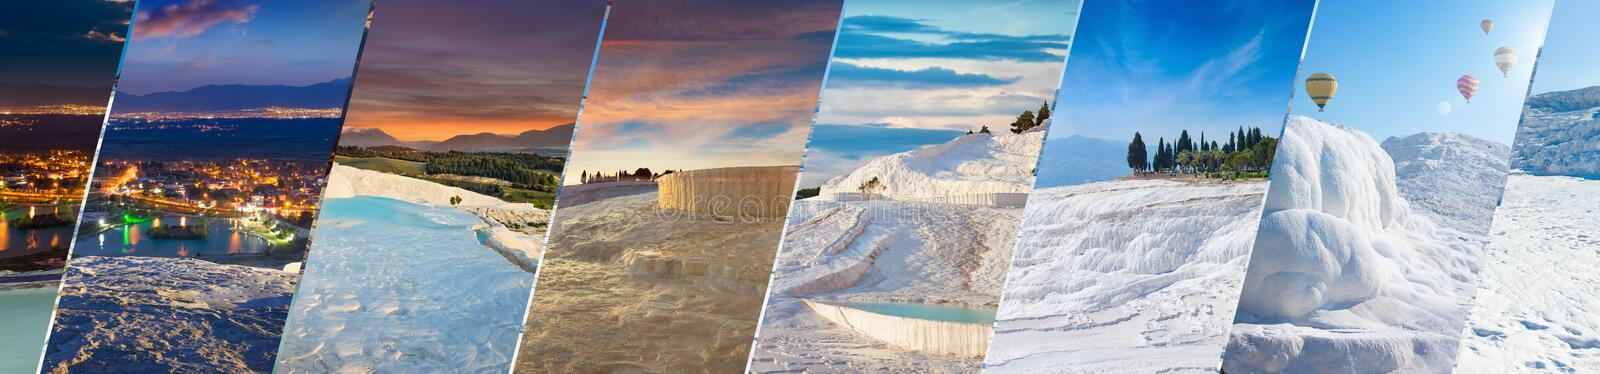 Amazing white travertine in different time of day, geological phenomenon literally royalty free stock image